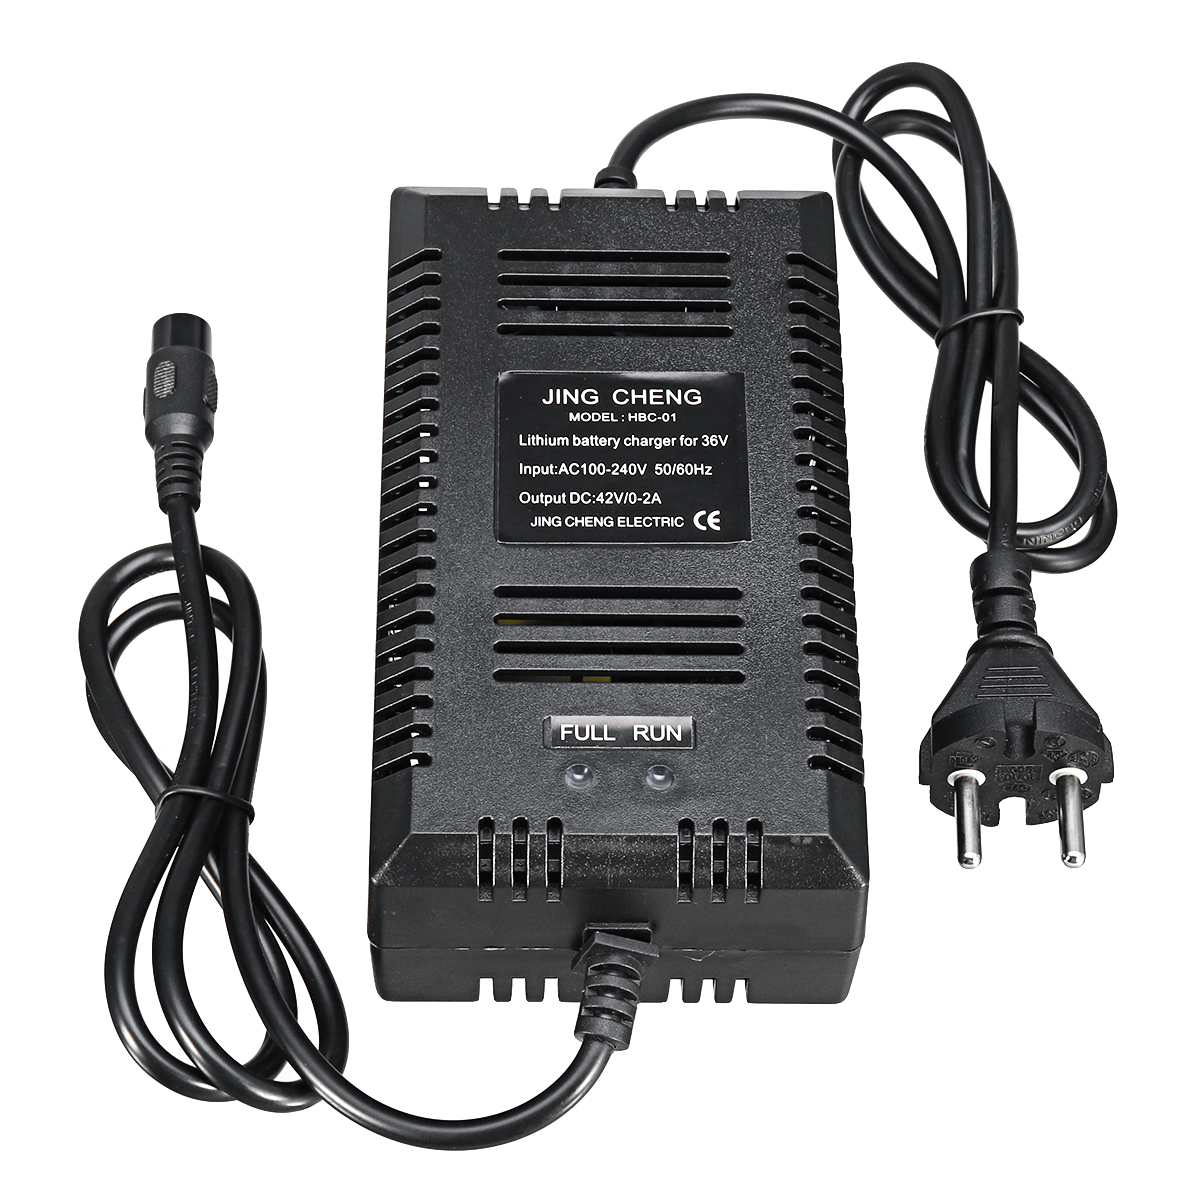 43.8V 1.6A Electric Bike Battery Charger for Scooter Power Supply Lithium Battery Charger